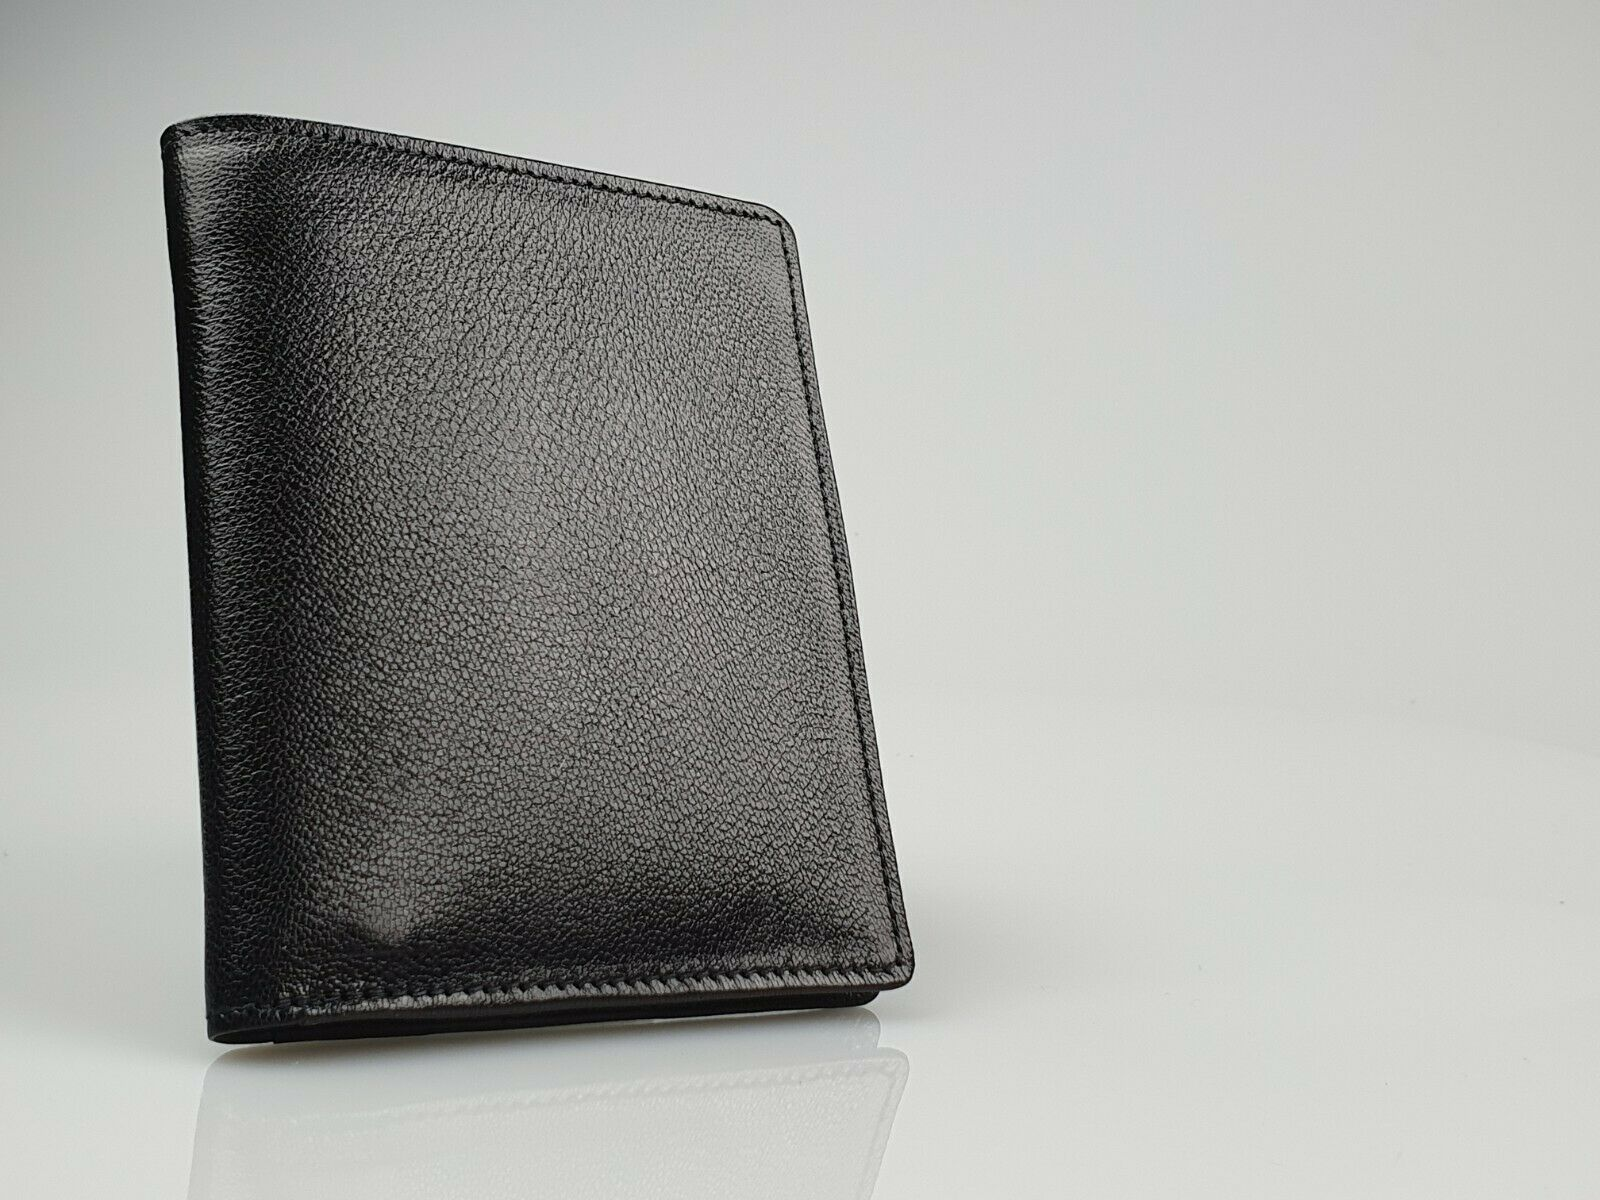 Peterson Black Leather Bifold Wallet (90mm x 110mm) *New in Box* - 195